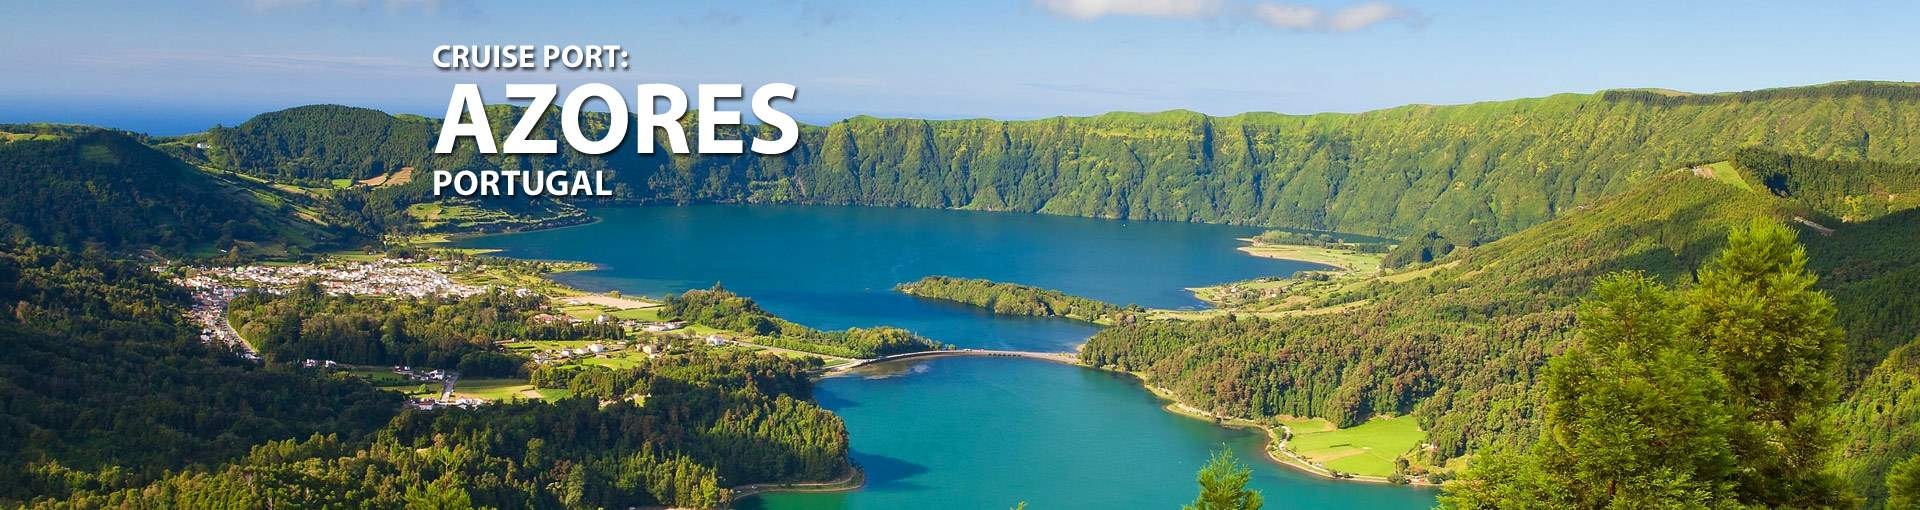 Cruises from Ponta Delgada, Azores, Portugal